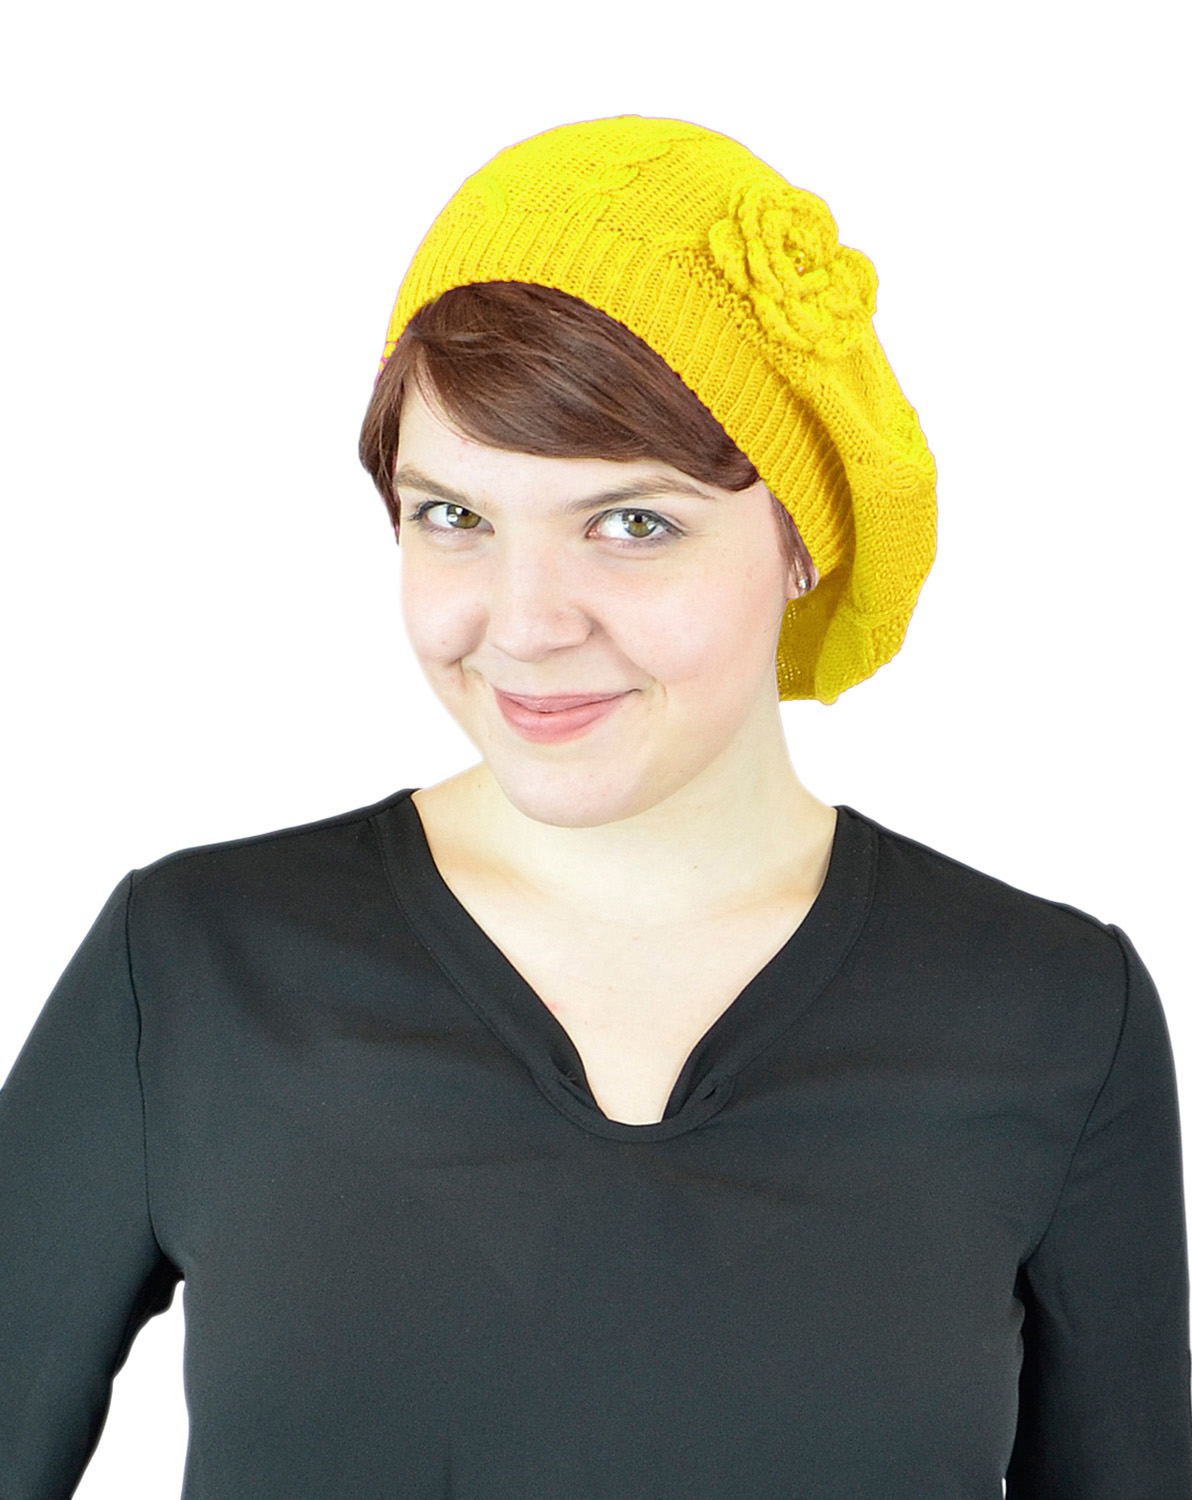 Belle Donne - Women's Mesh Crocheted Accented Stretch Beret Hat- Yellow 4082